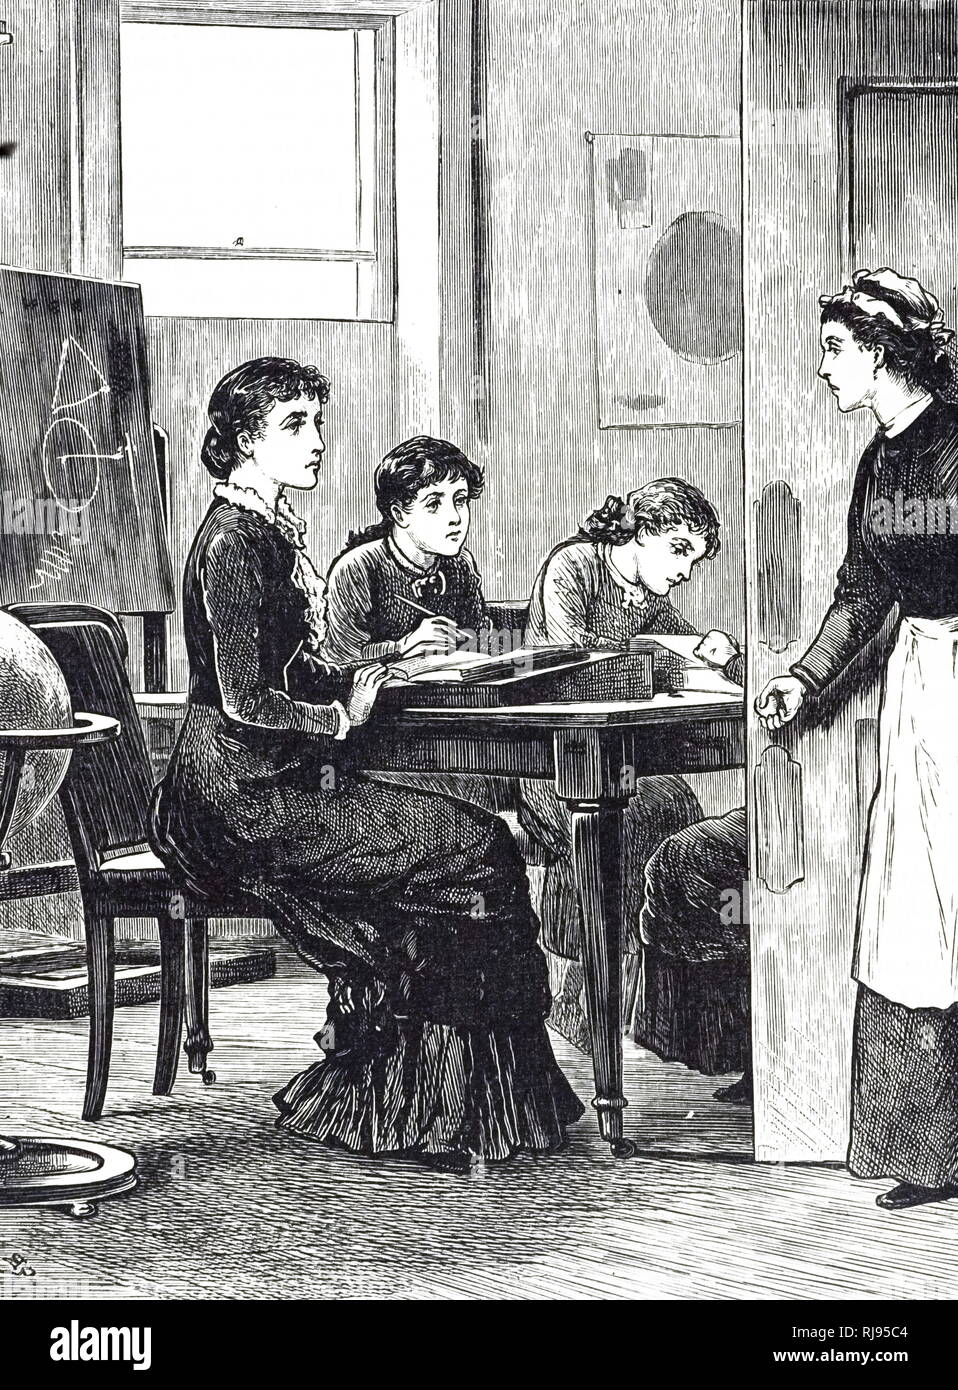 An engraving depicting a governess and her charges in a classroom. Dated 19th century - Stock Image